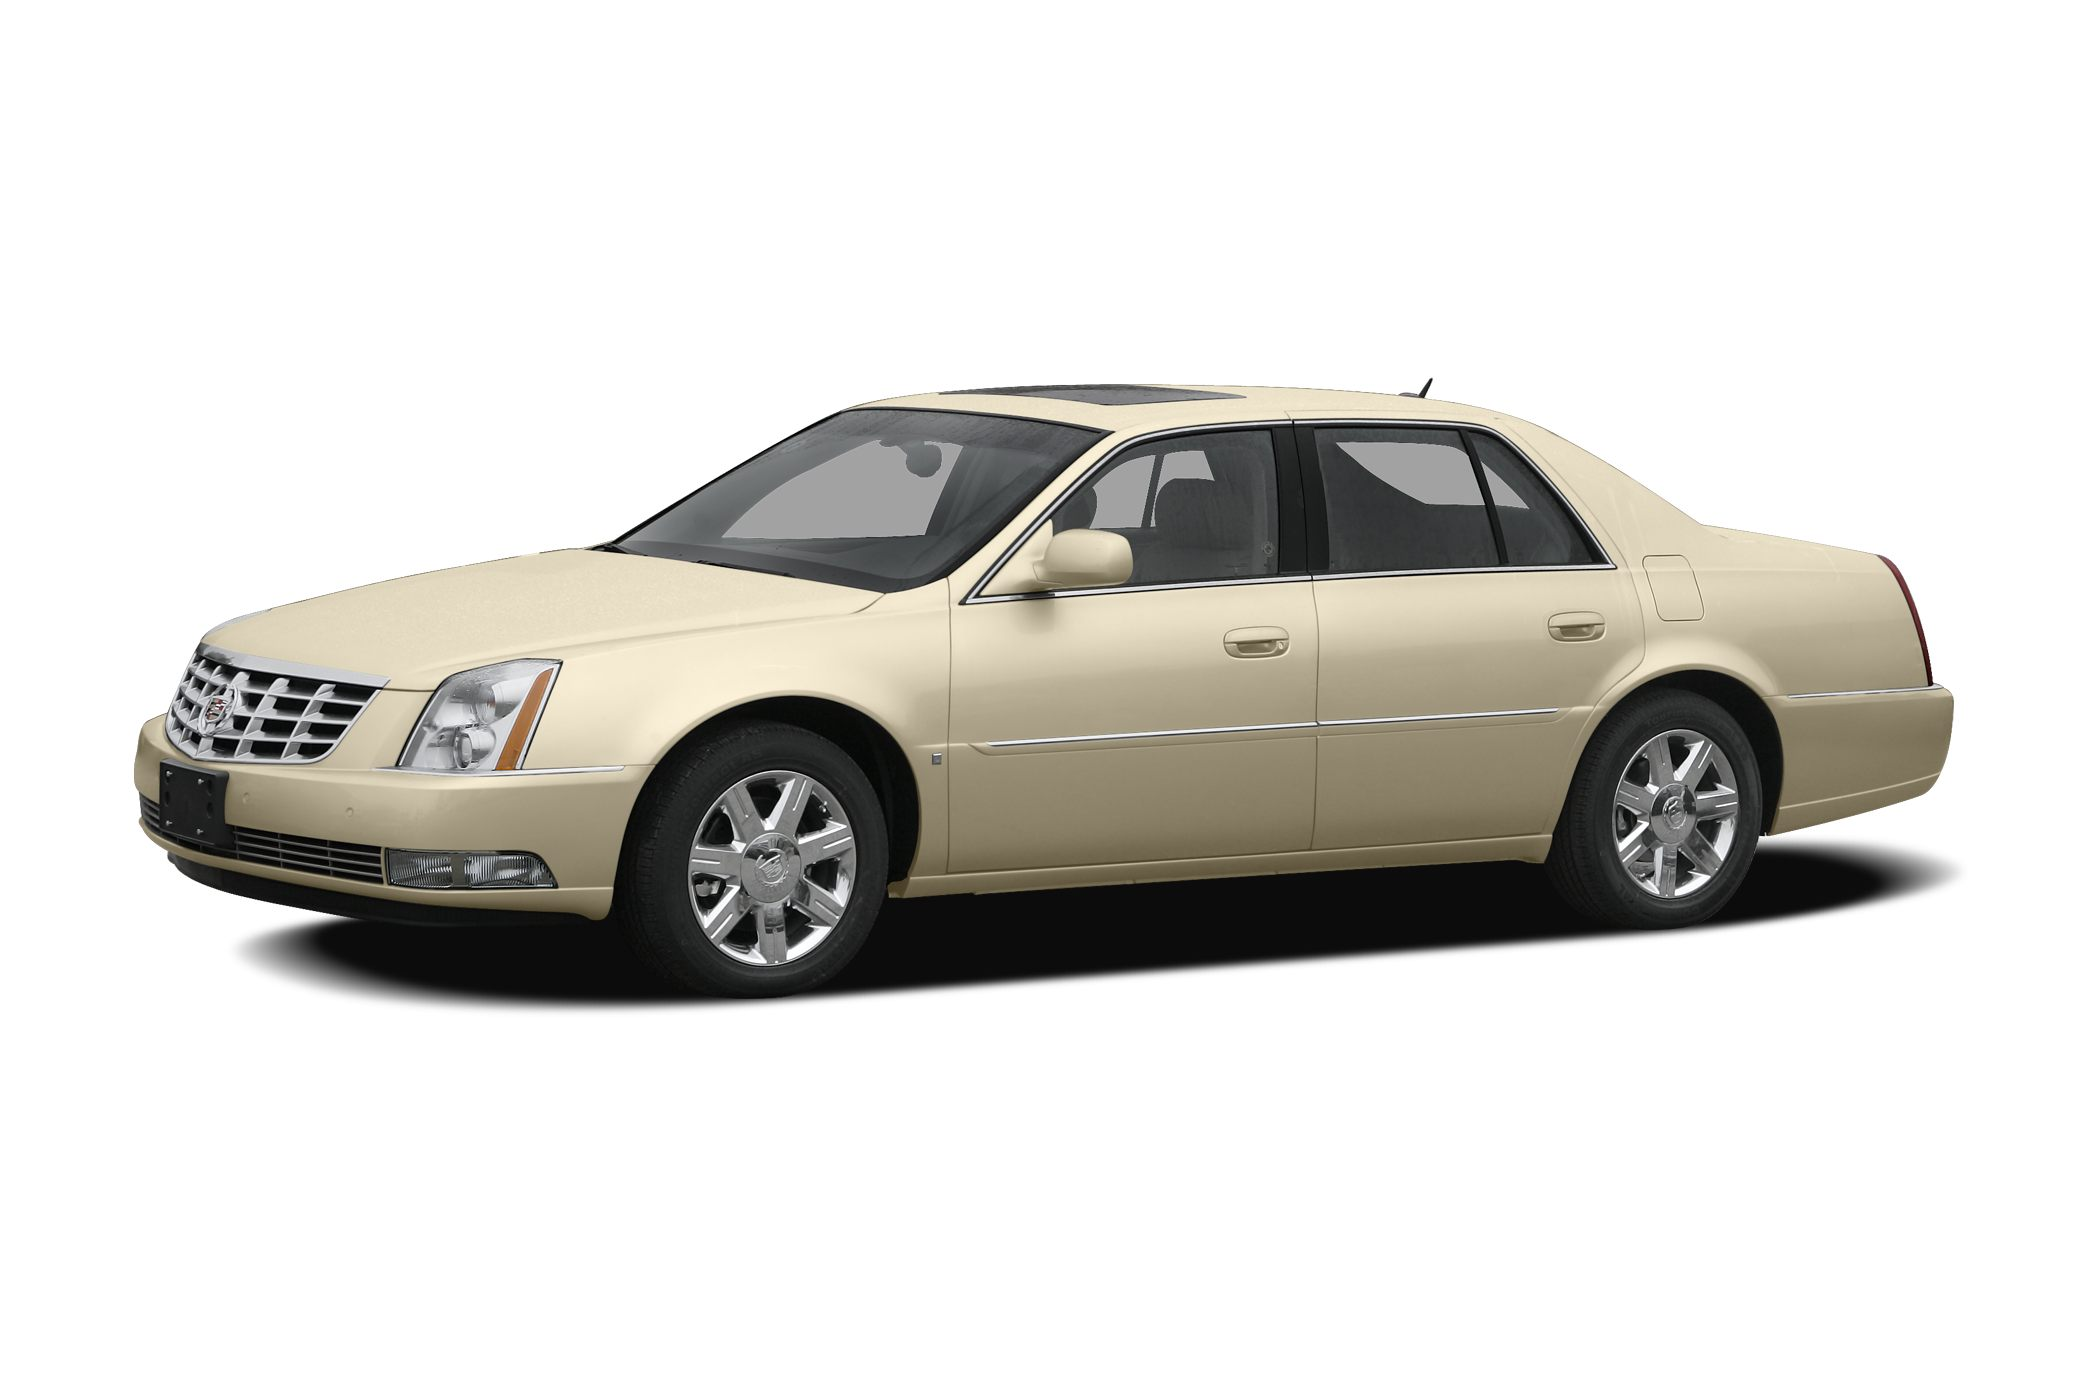 2007 Cadillac DTS Sedan for sale in Baltimore for $13,495 with 59,667 miles